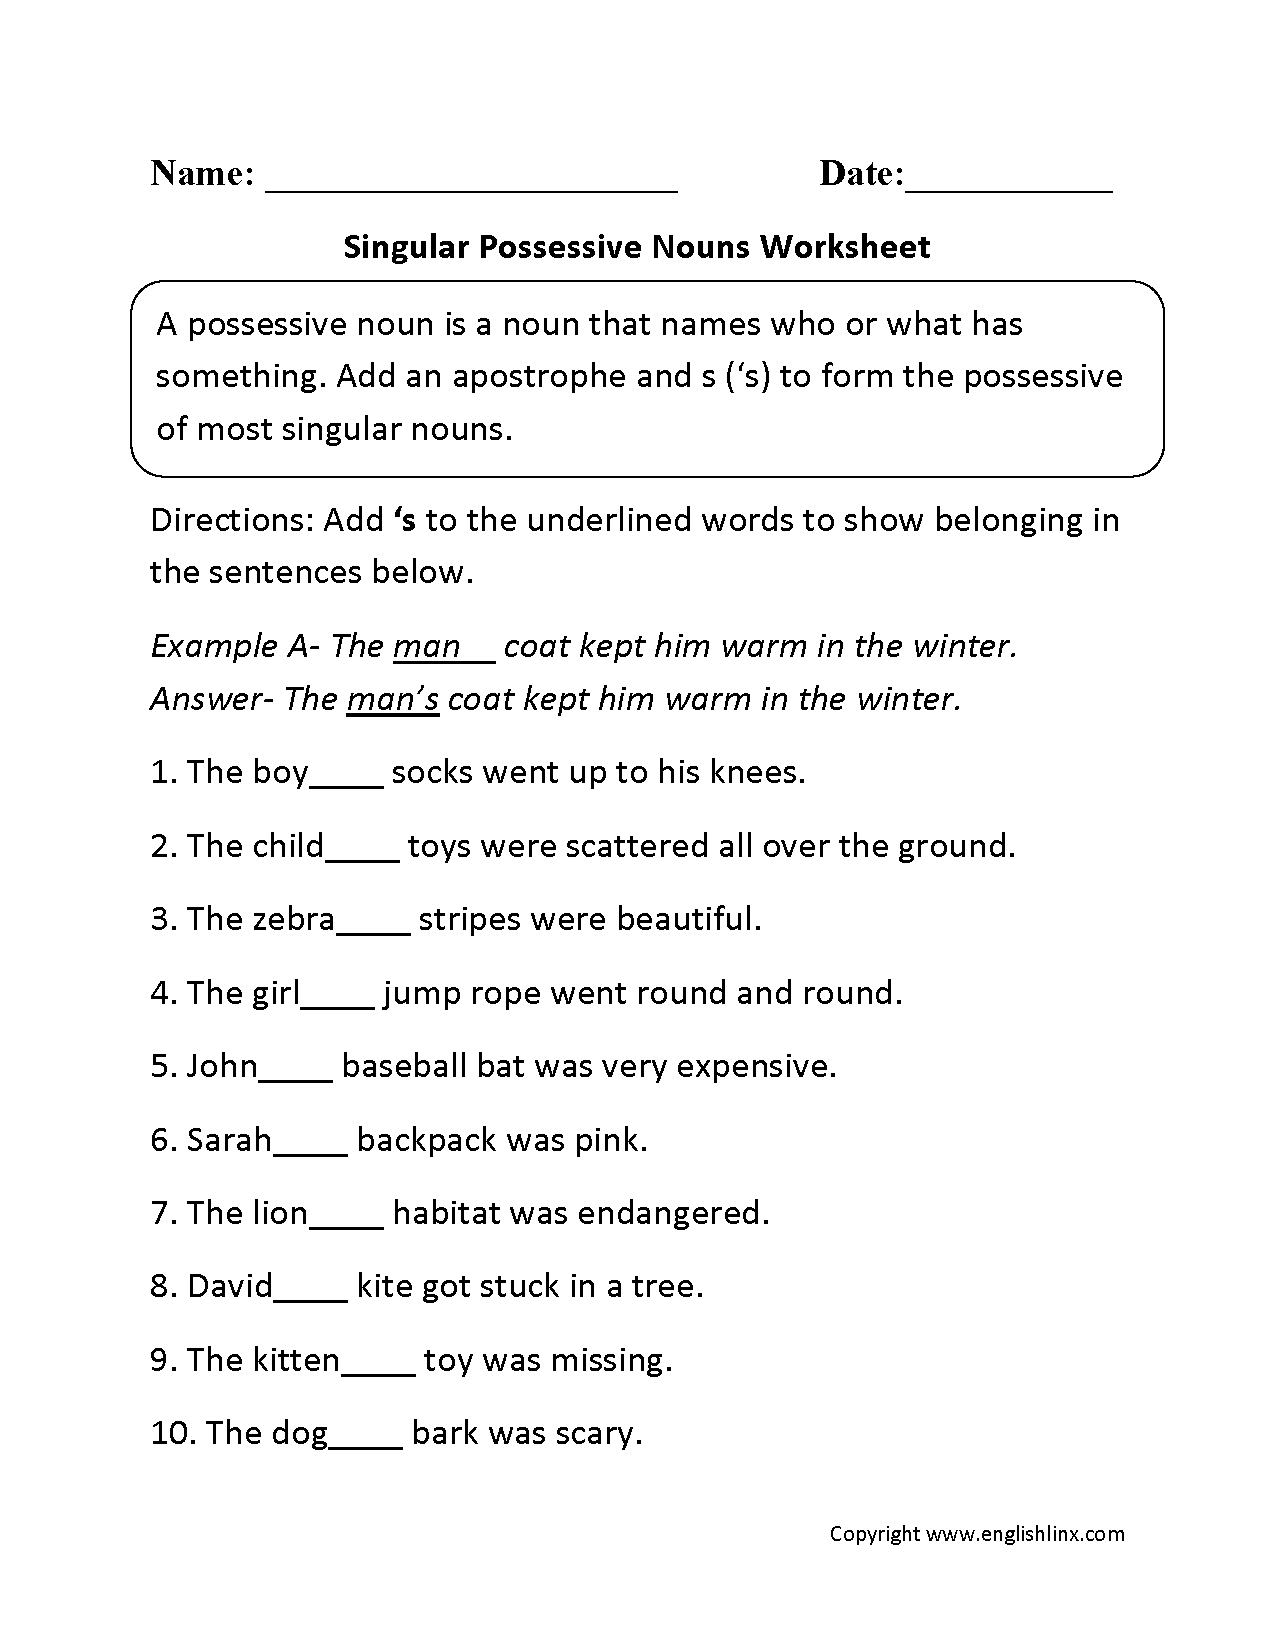 Aldiablosus  Sweet Nouns Worksheets  Possessive Nouns Worksheets With Fascinating Possessive Nouns Worksheets With Extraordinary Printable Sixth Grade Math Worksheets Also Adding And Subtracting Negative And Positive Numbers Worksheet In Addition Worksheet For Small Alphabets And Subtraction Number Sentences Worksheets As Well As Maze Worksheet Additionally Similar Right Triangles Worksheet Answers From Englishlinxcom With Aldiablosus  Fascinating Nouns Worksheets  Possessive Nouns Worksheets With Extraordinary Possessive Nouns Worksheets And Sweet Printable Sixth Grade Math Worksheets Also Adding And Subtracting Negative And Positive Numbers Worksheet In Addition Worksheet For Small Alphabets From Englishlinxcom